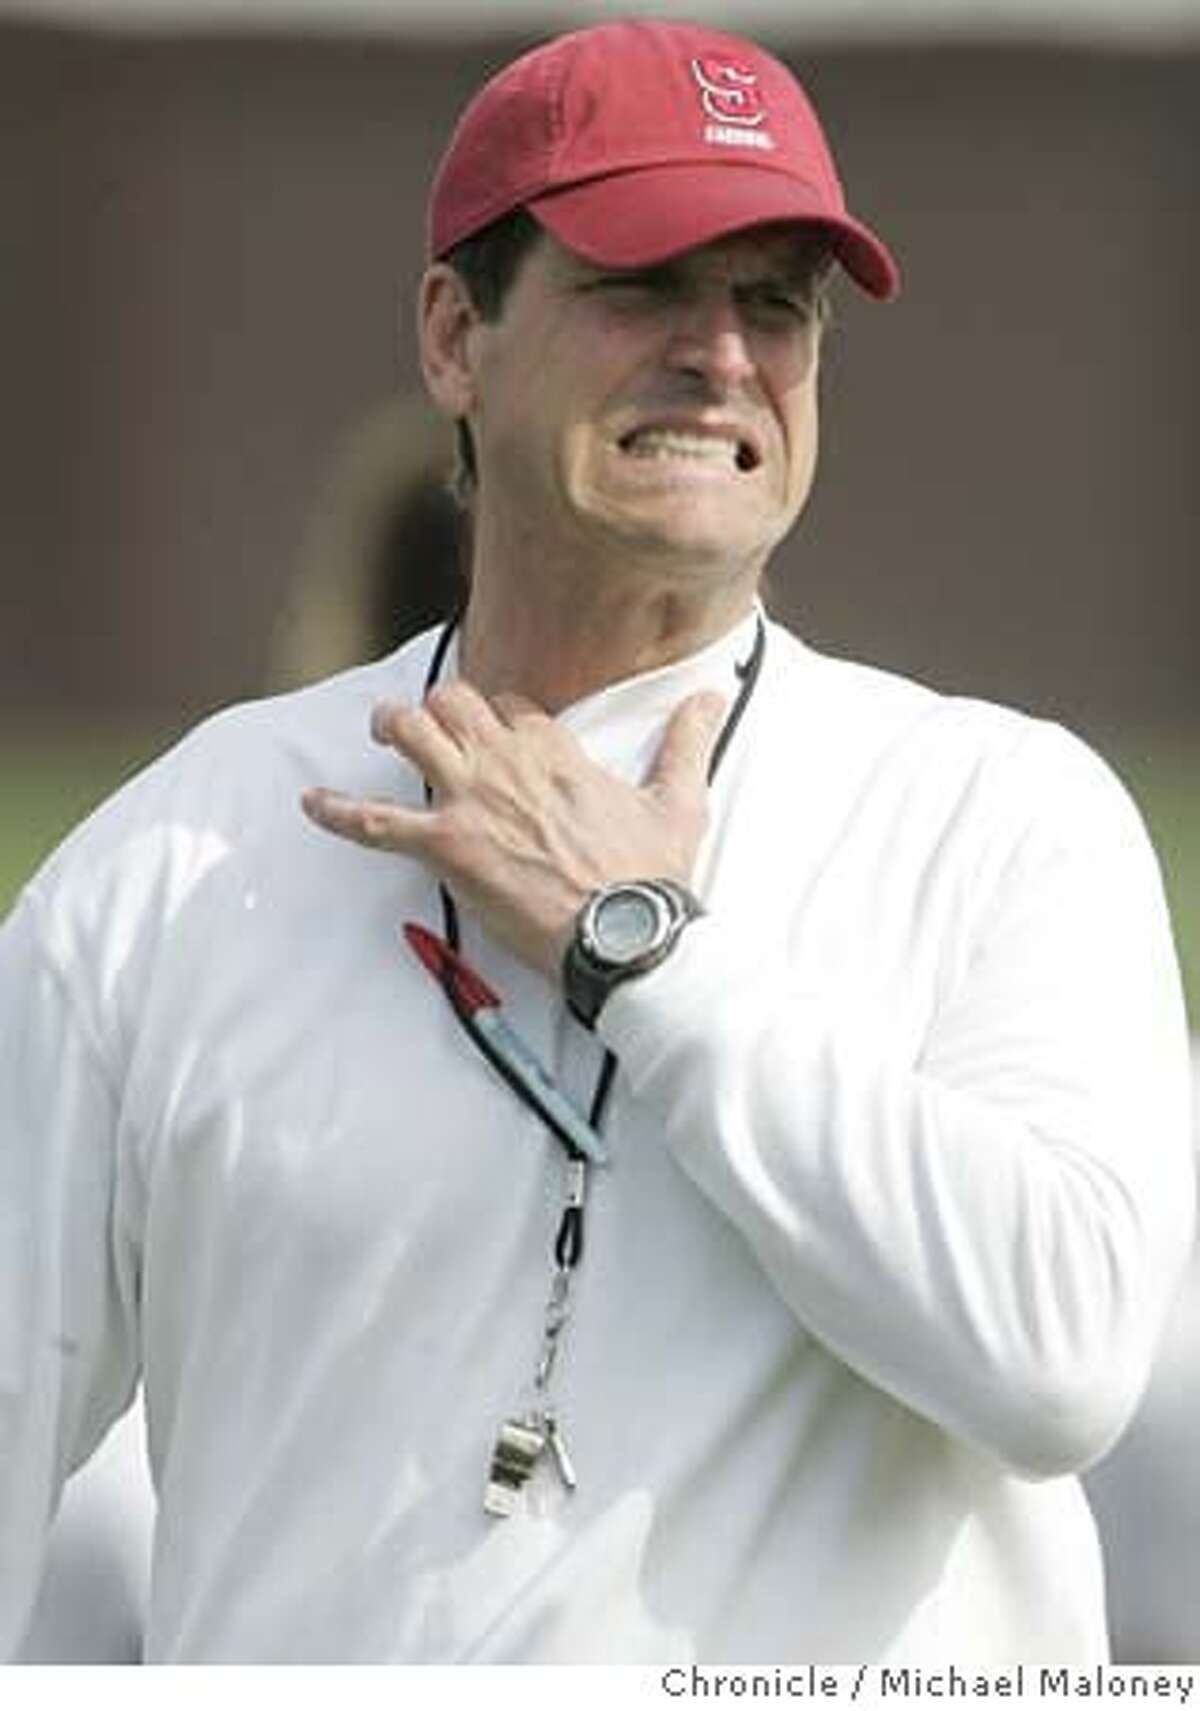 Stanford head coach Jim Harbaugh. Stanford football holds practice under the direction of their new head coach Jim Harbaugh. Photo by Michael Maloney / San Francisco Chronicle ***roster : Jim Harbaugh MANDATORY CREDIT FOR PHOTOG AND SF CHRONICLE/NO SALES-MAGS OUT